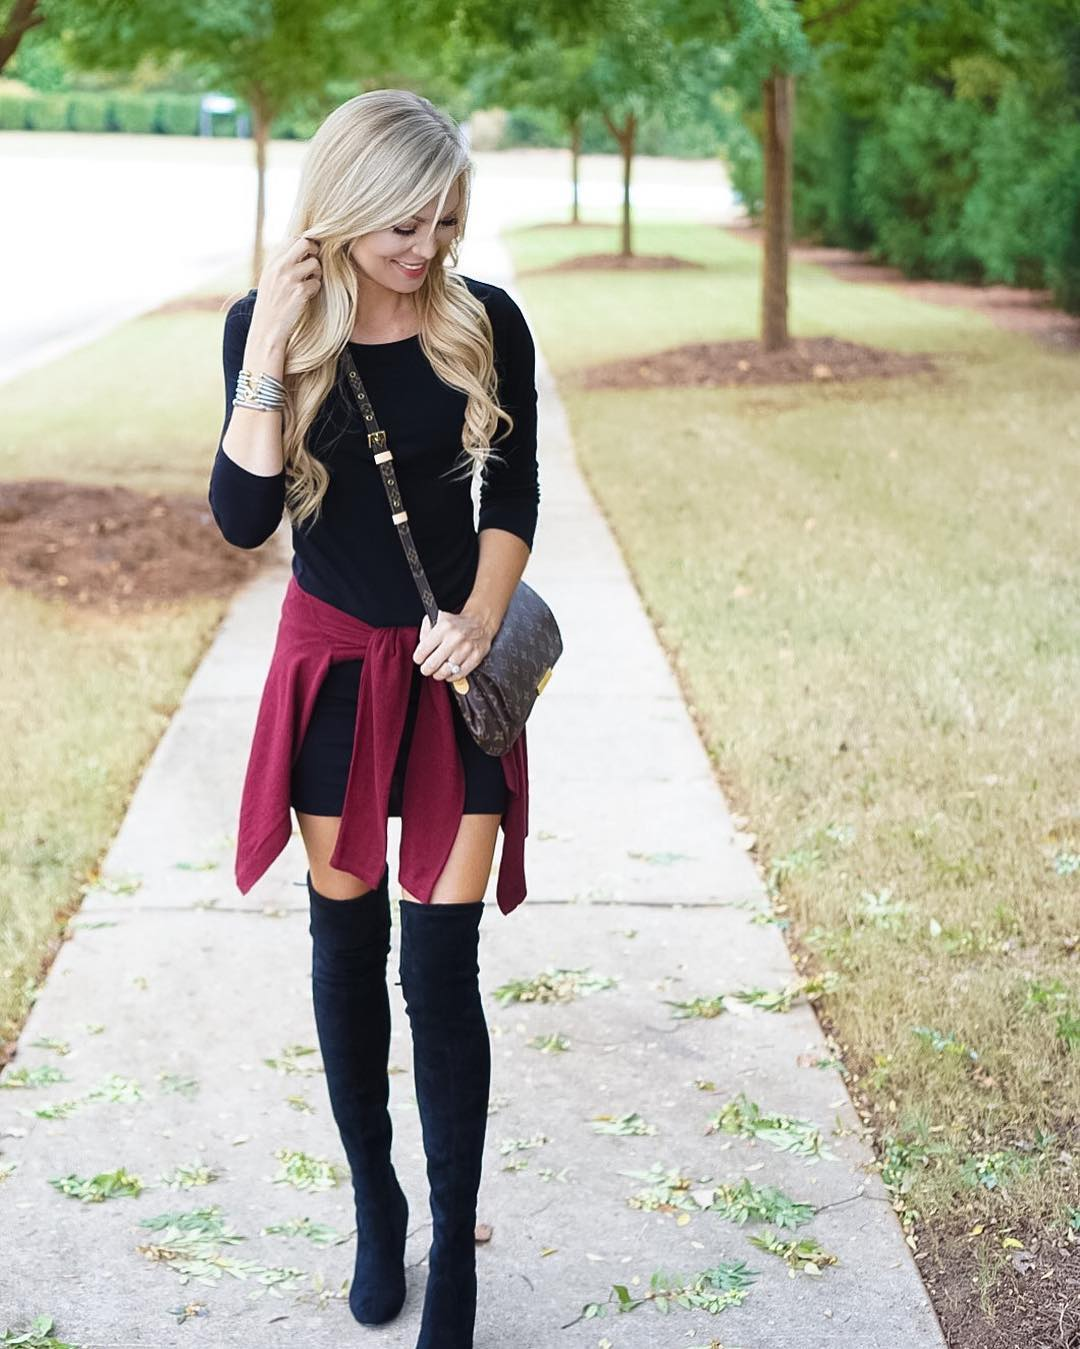 BRB...I'll be living in over the knee boots until further notice!? RTR http://liketk.it/2podO #rolltide #liketkit #wiw #ootd